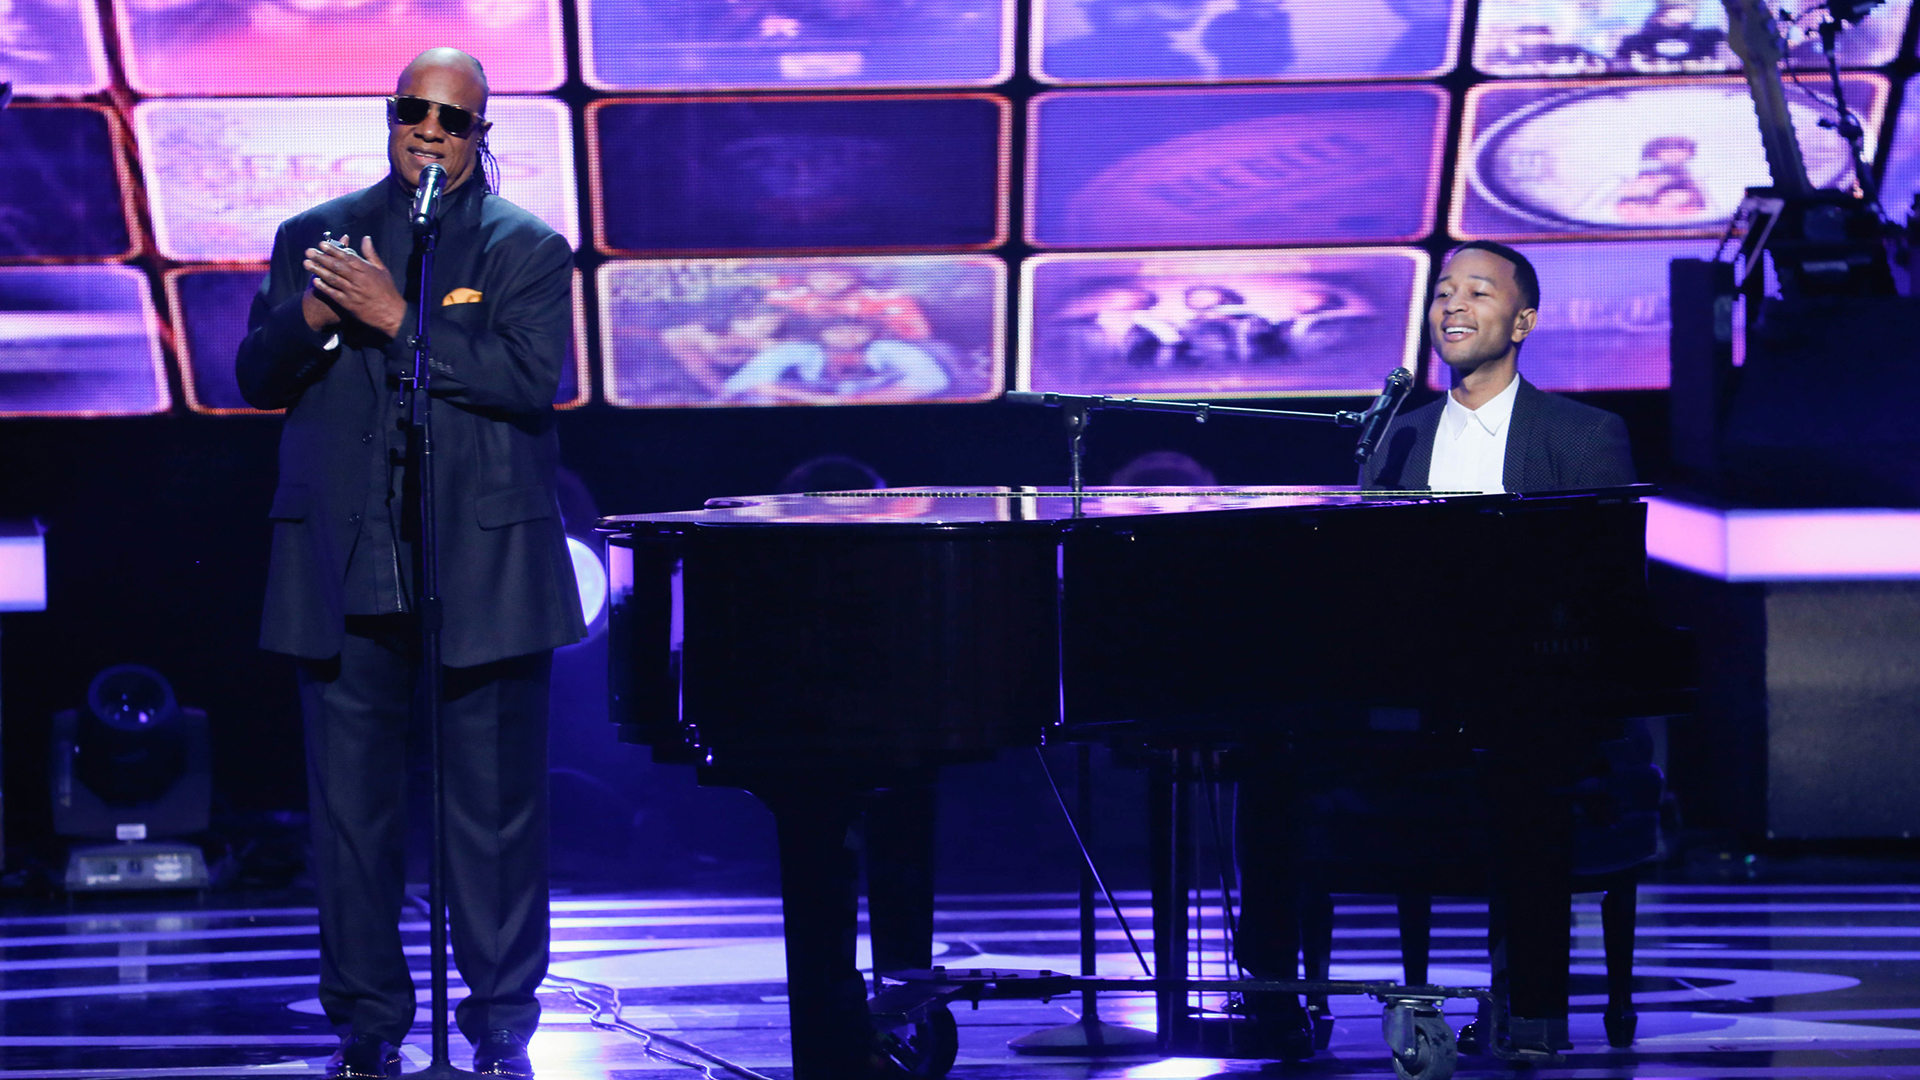 Stevie Wonder and John Legend perform